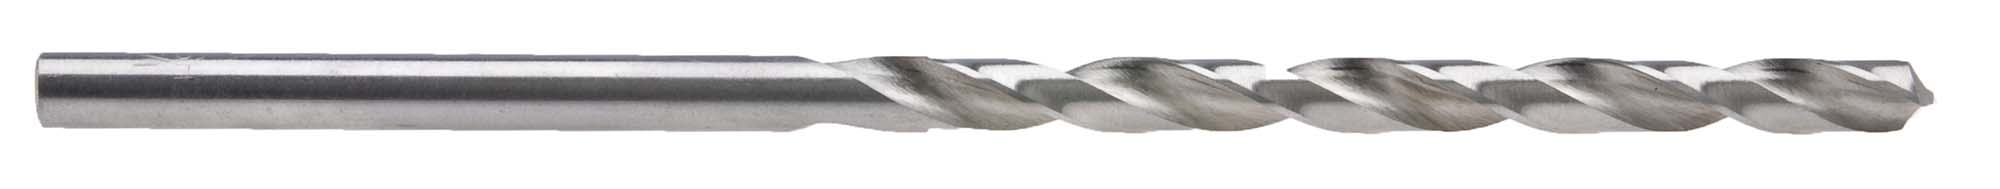 "A (.234"") ""Taper Length"" Long Straight Shank Drill Bit, High Speed Steel"